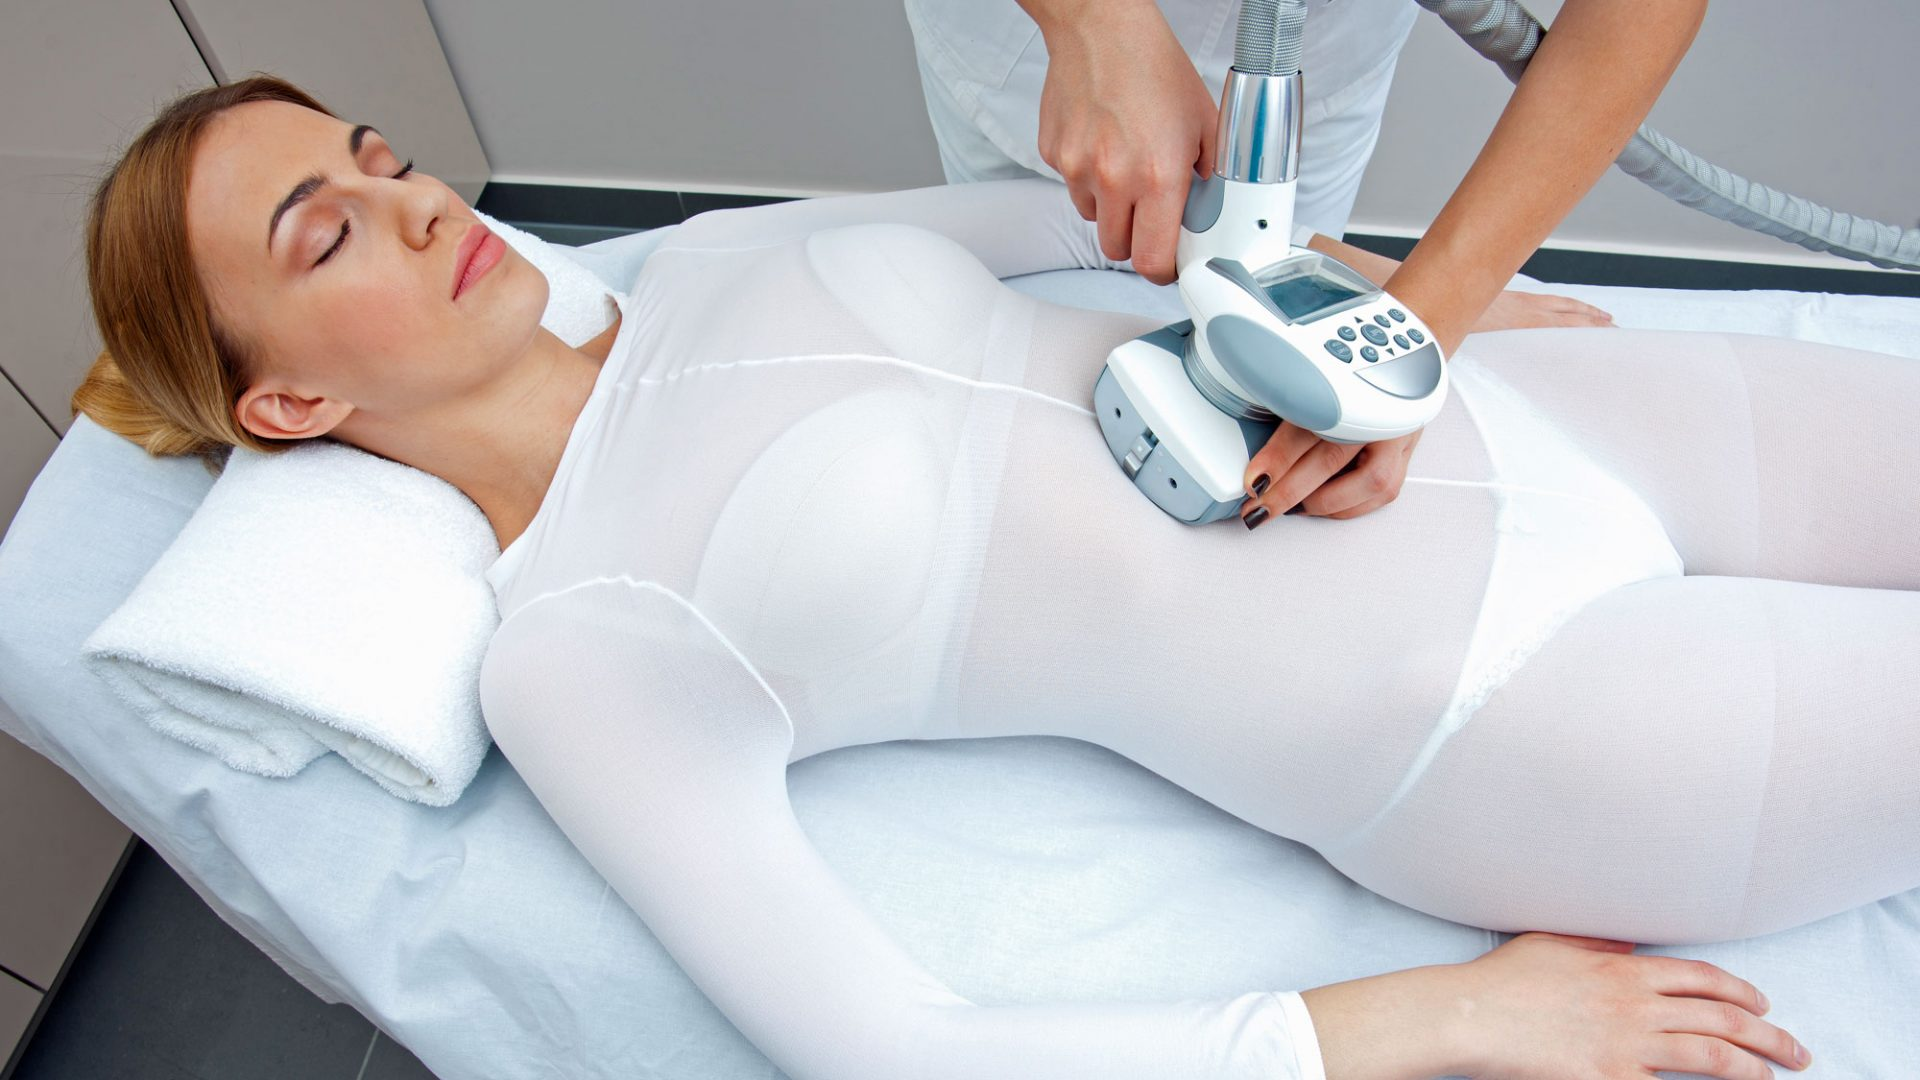 Nonsurgical Body Contouring Guide